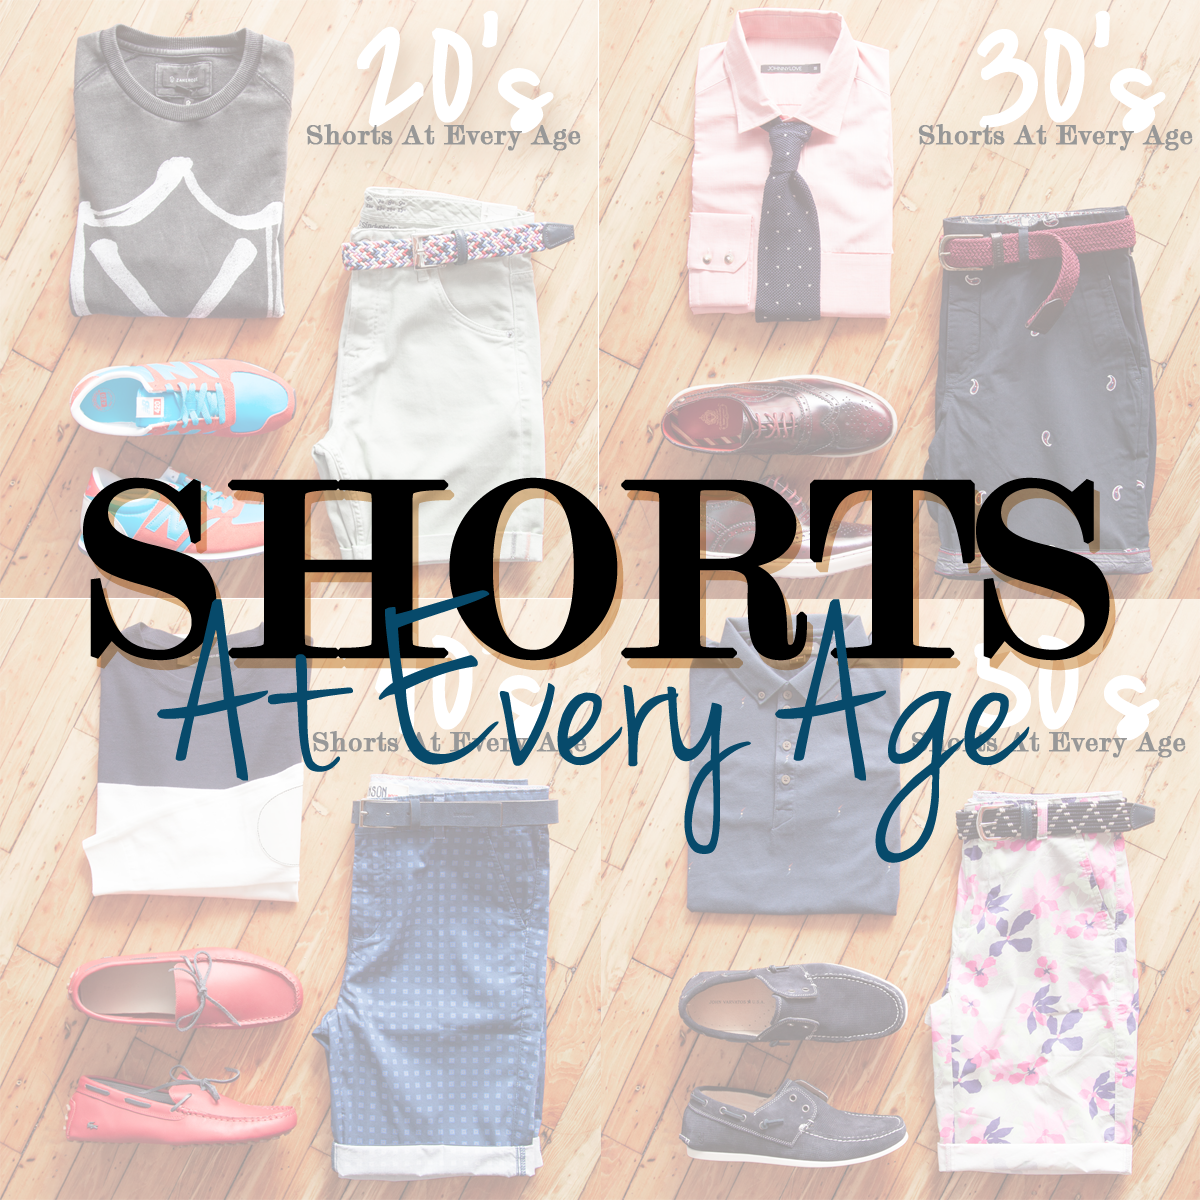 Shorts-At-Every-Age-Main